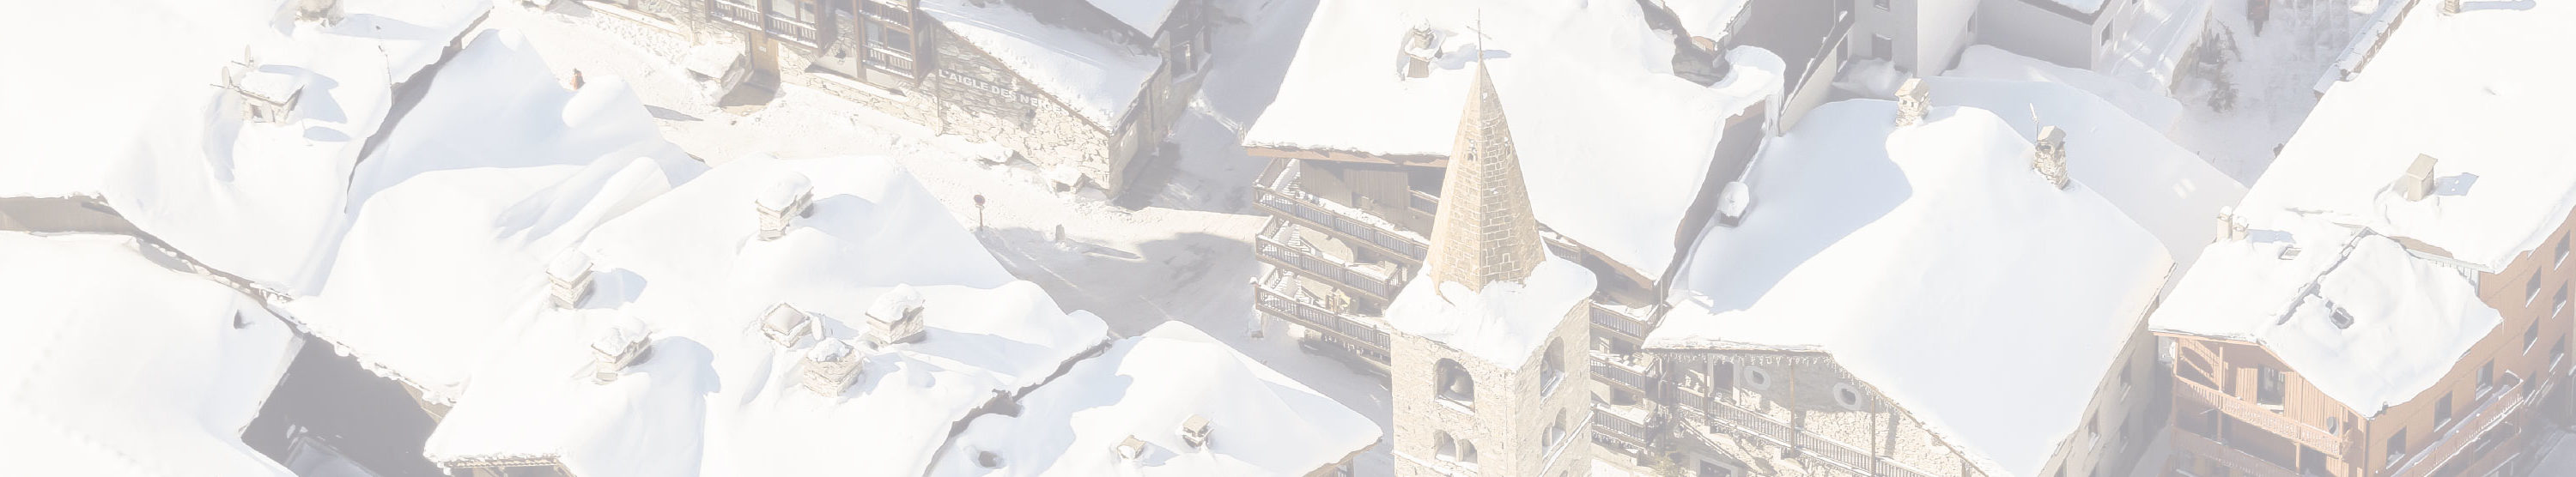 Luxury Ski Chalets in Val d'Isère from above